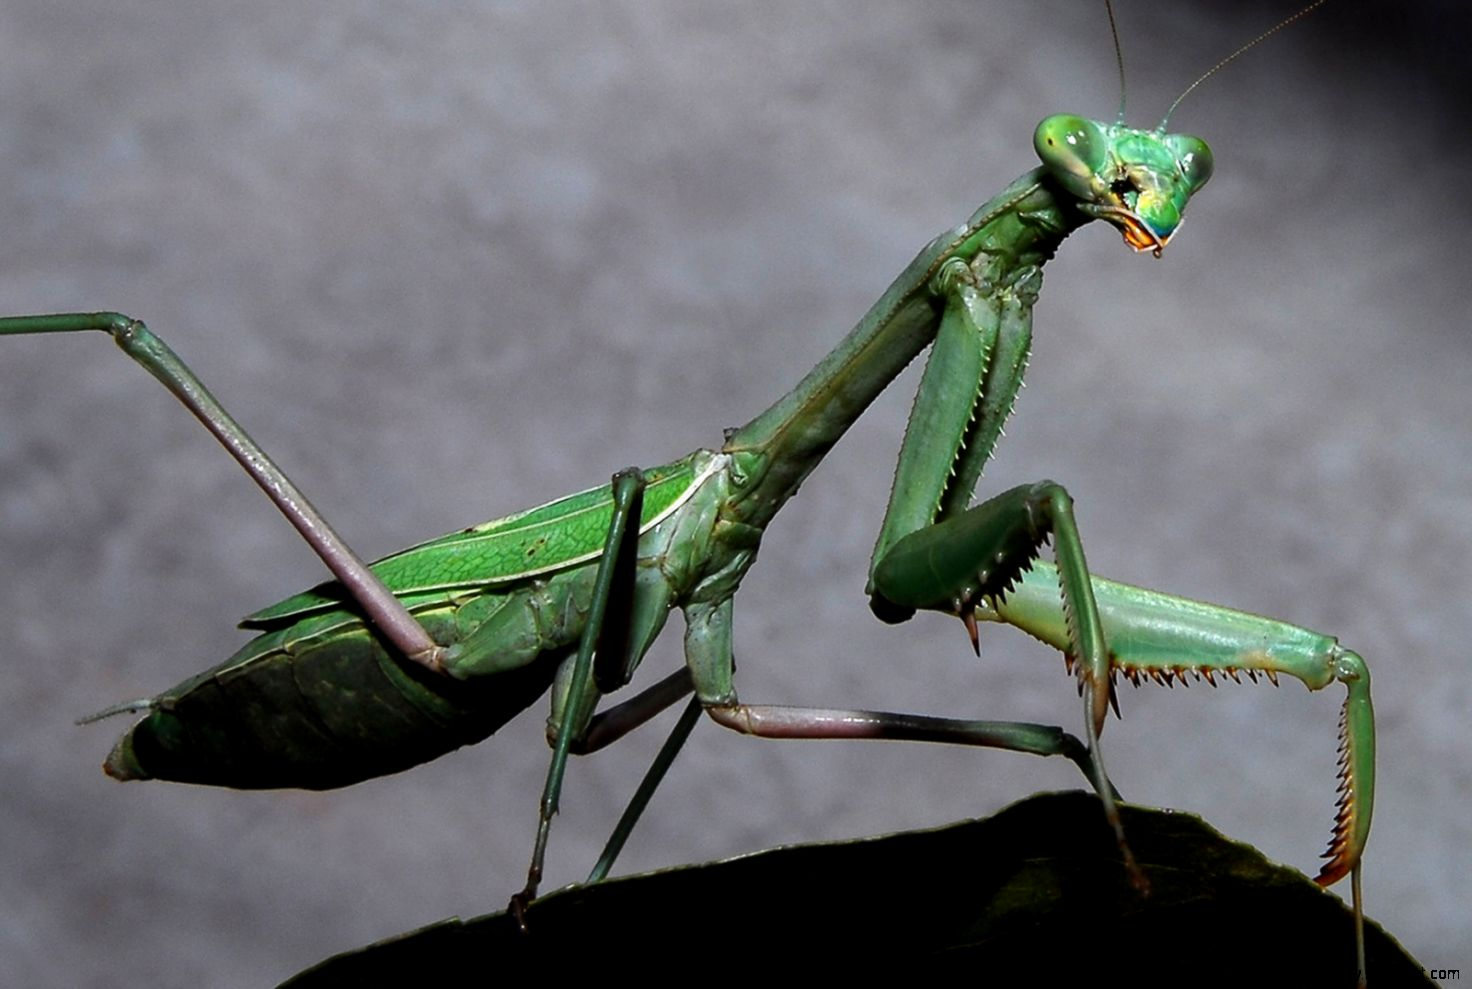 About Praying Mantis